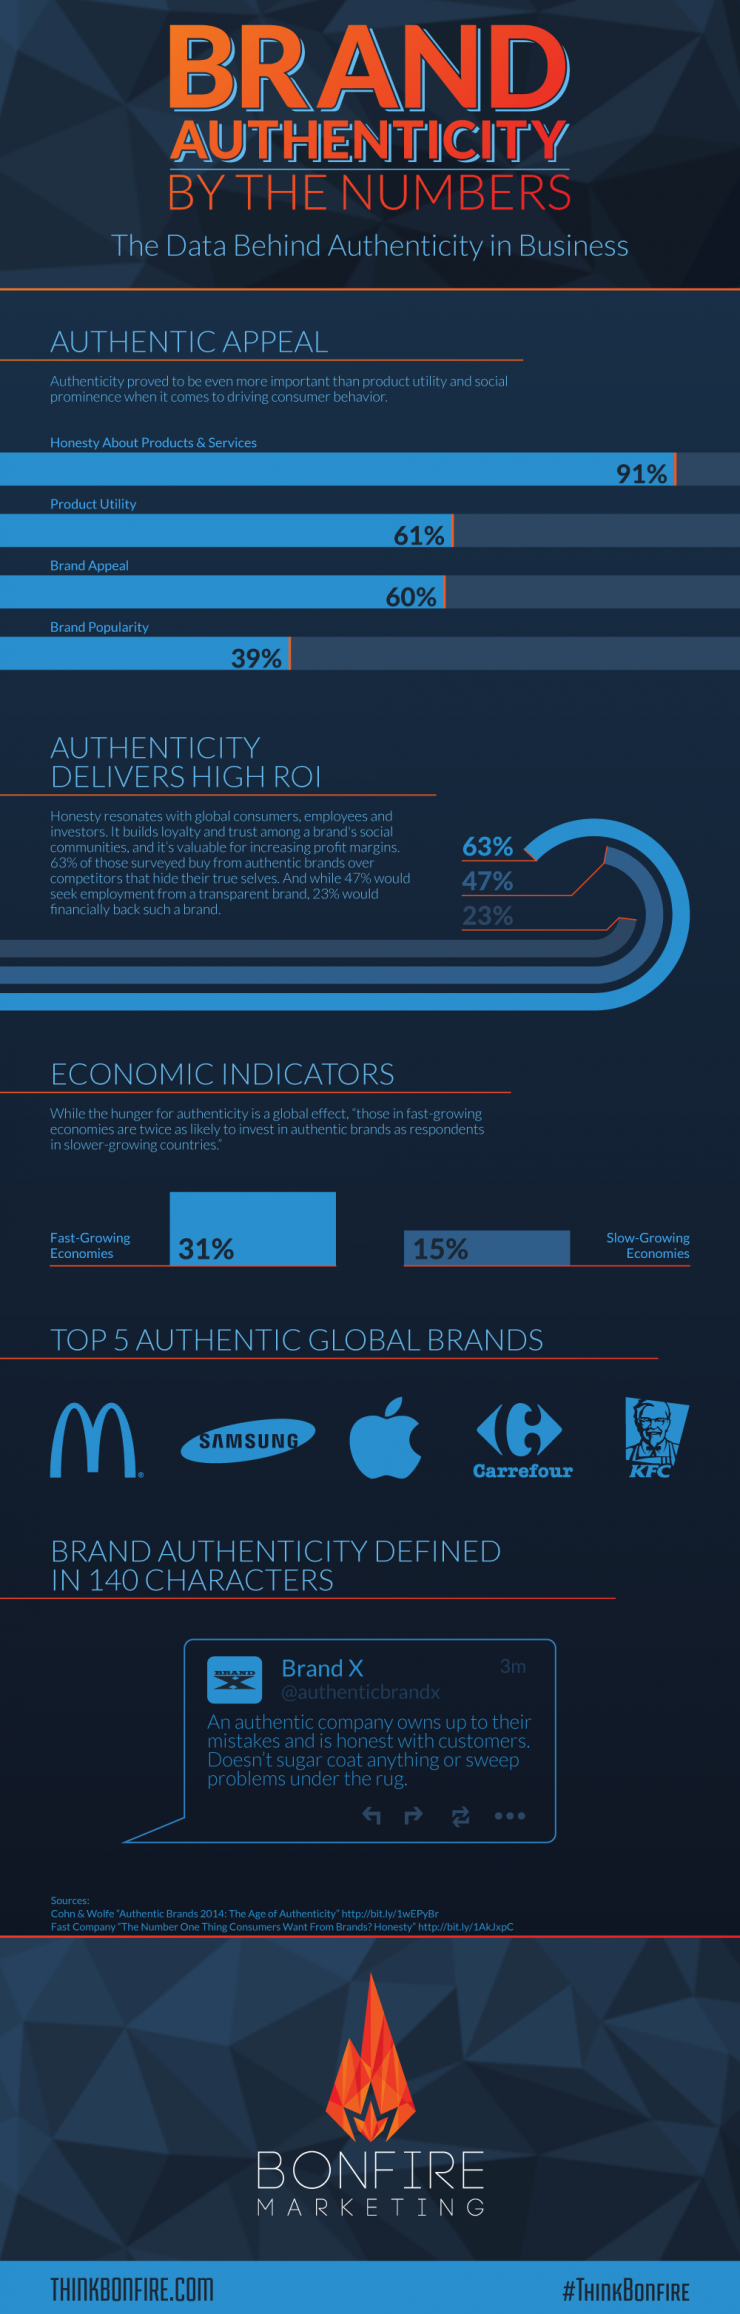 Brand Authenticity: By the Numbers